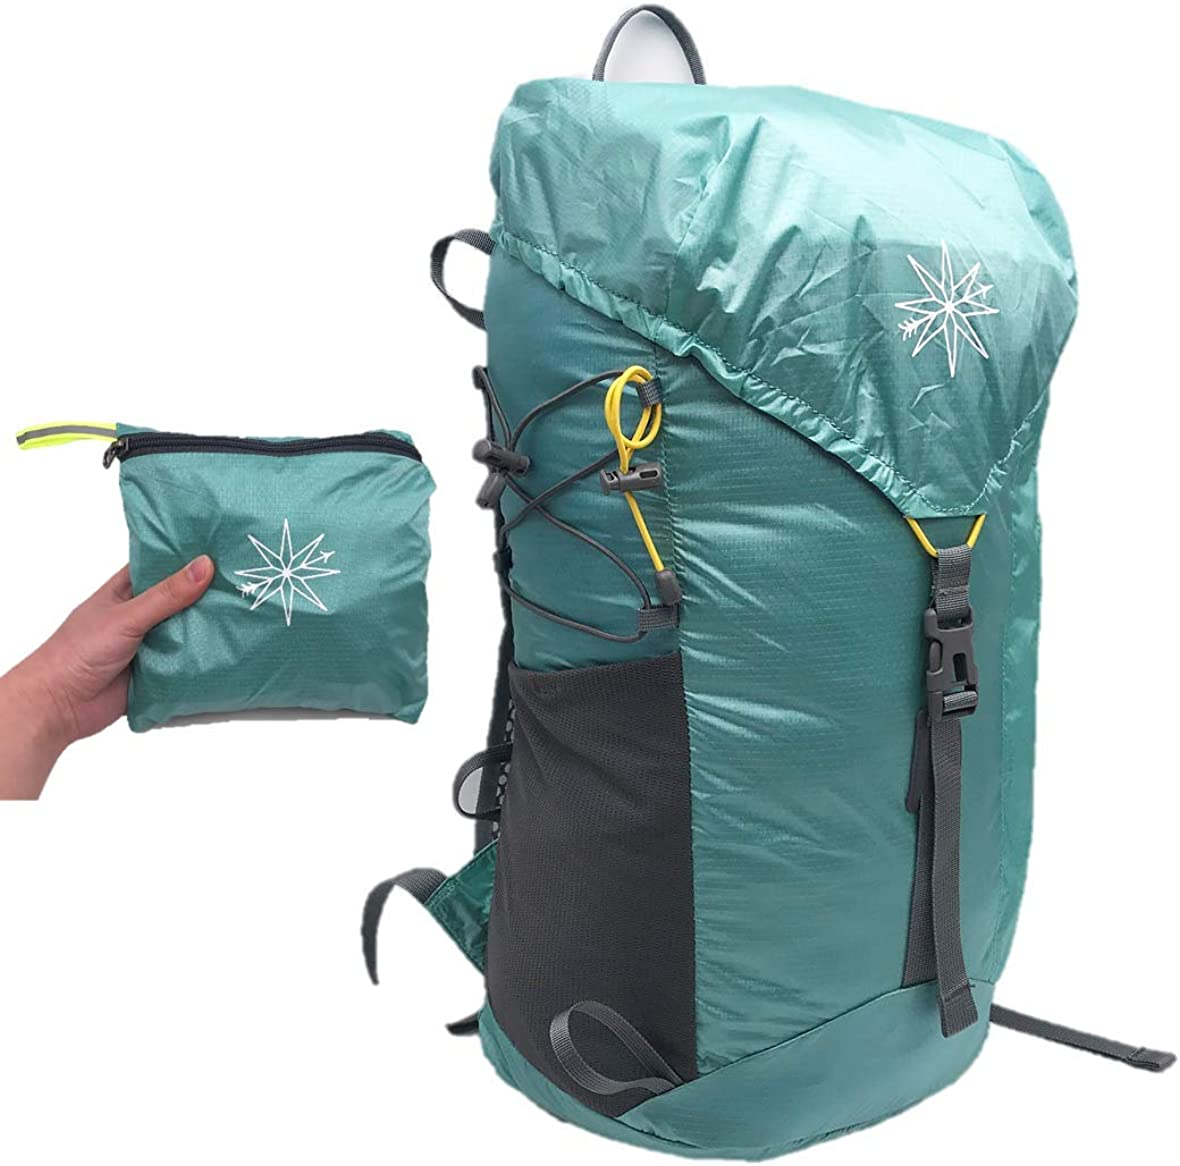 Compass Outdoors Hiking Daypack- 30L Ultralight and Packable Backpack